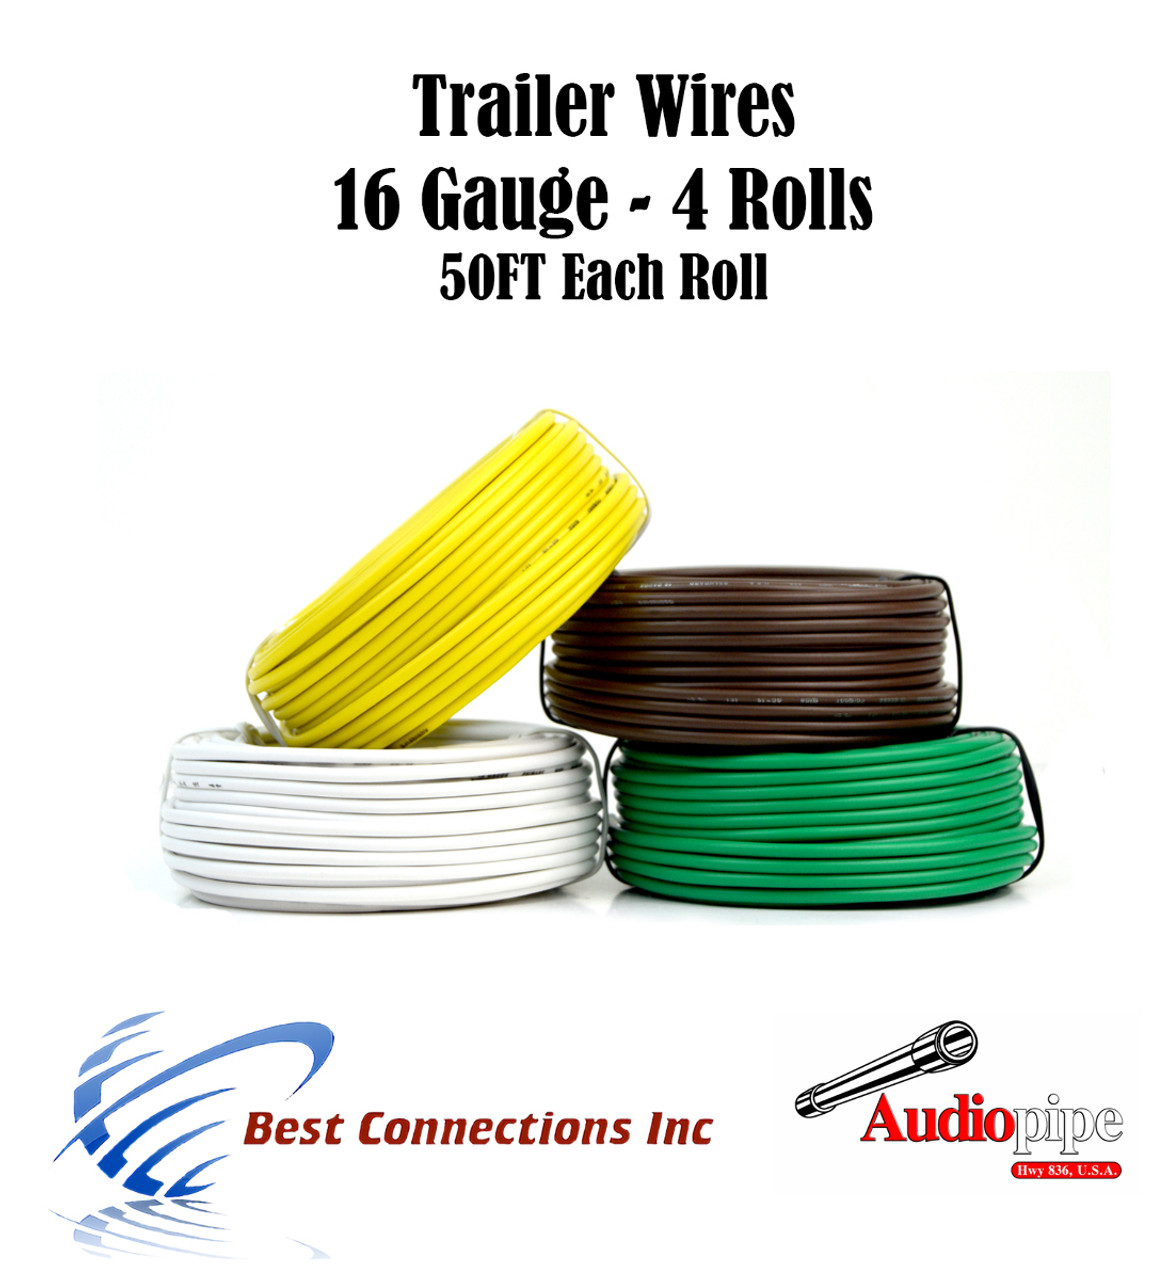 medium resolution of 4 way trailer wire light cable for harness 50 ft each roll 16 gauge 4 colors